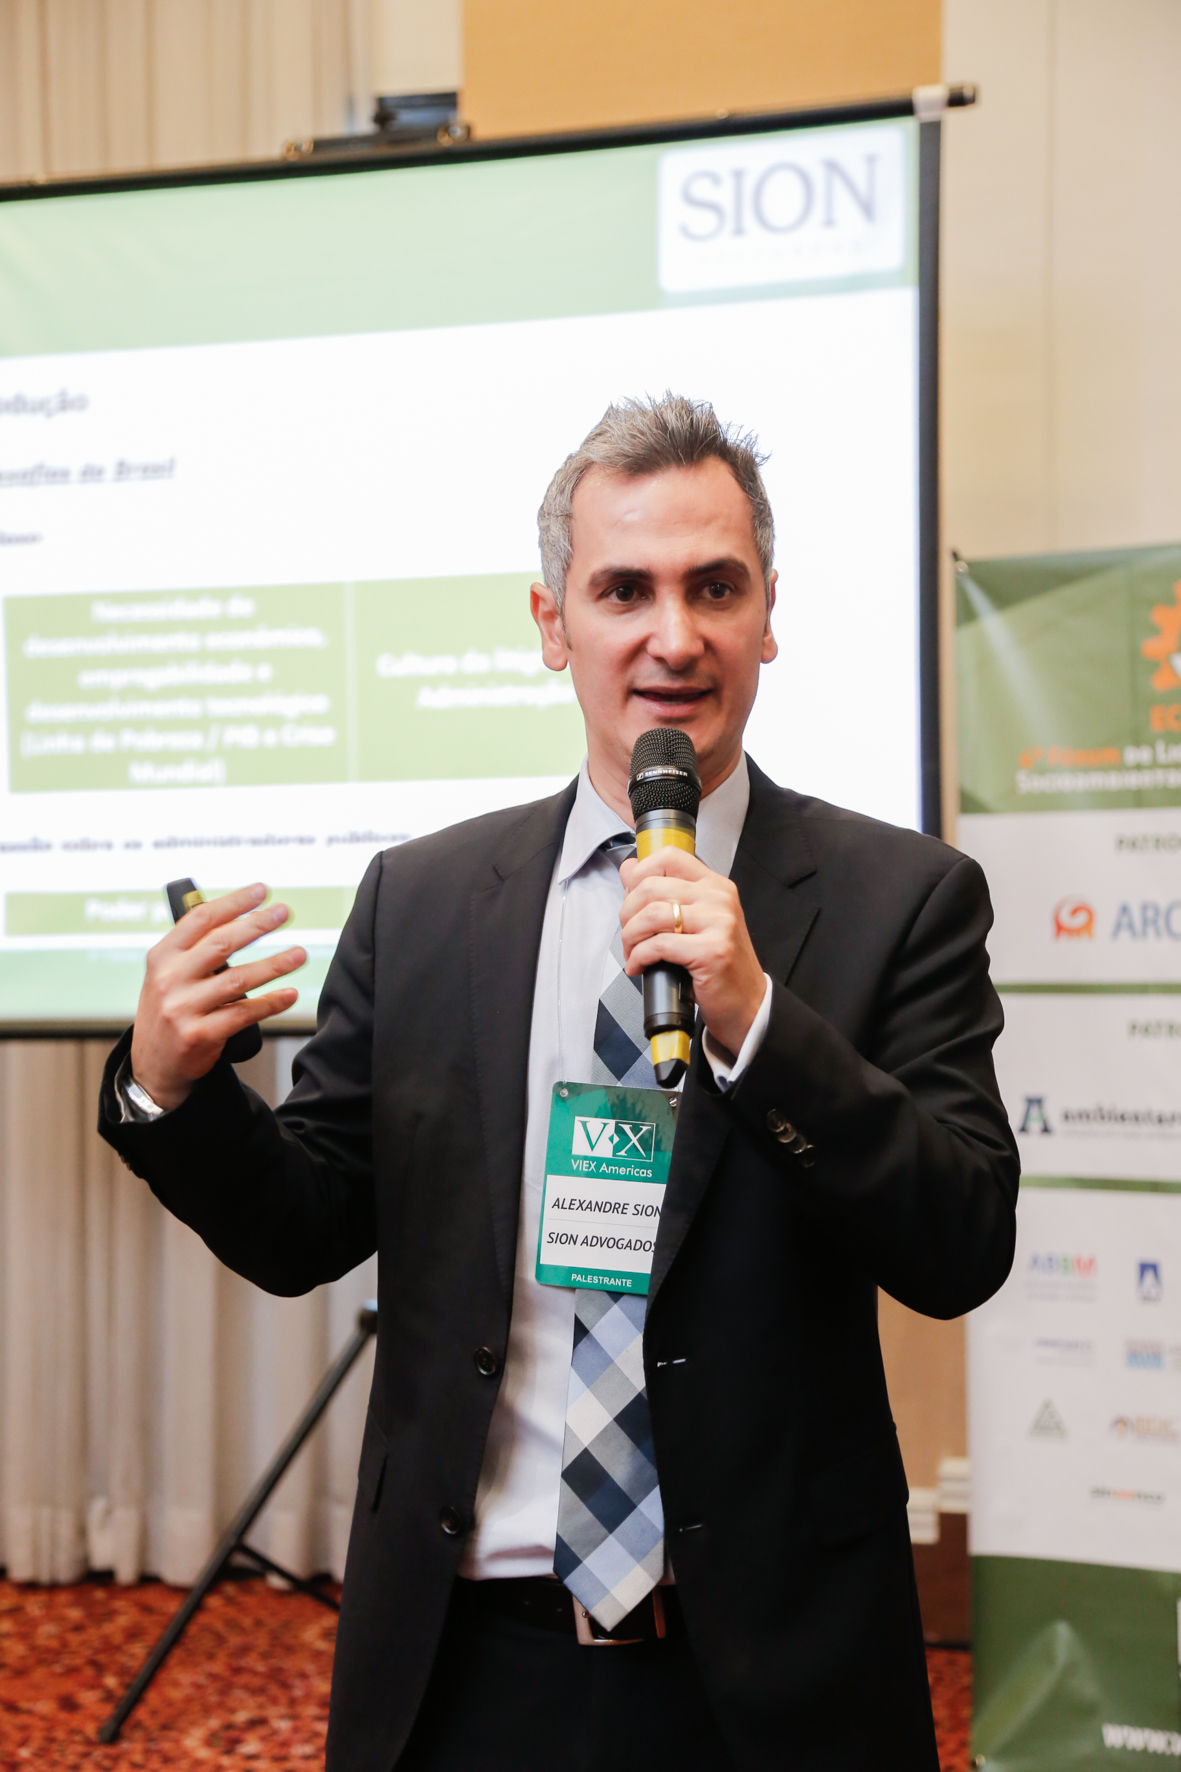 Alexandre Sion spoke at ECOINFRA 2015 – 4th Forum for Infrastructure Socio-environmental Licensing and Management